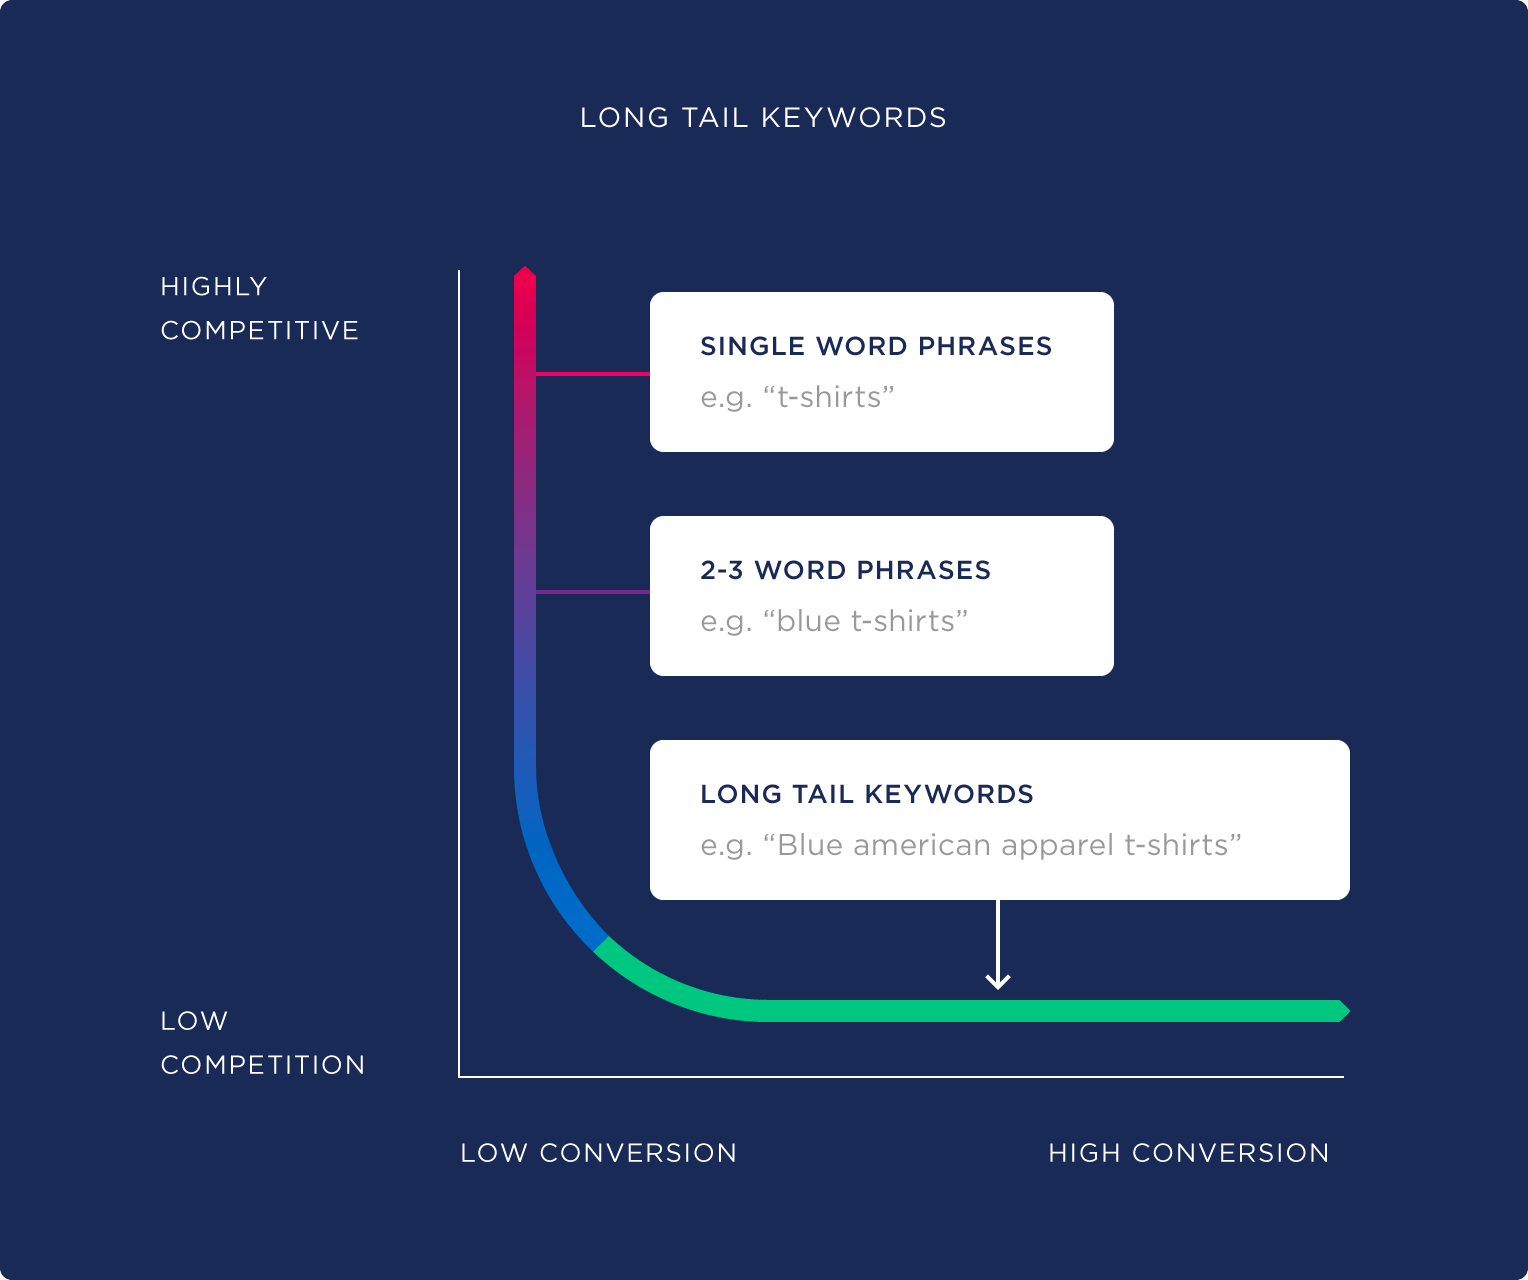 Long tail keywords by Backlinko